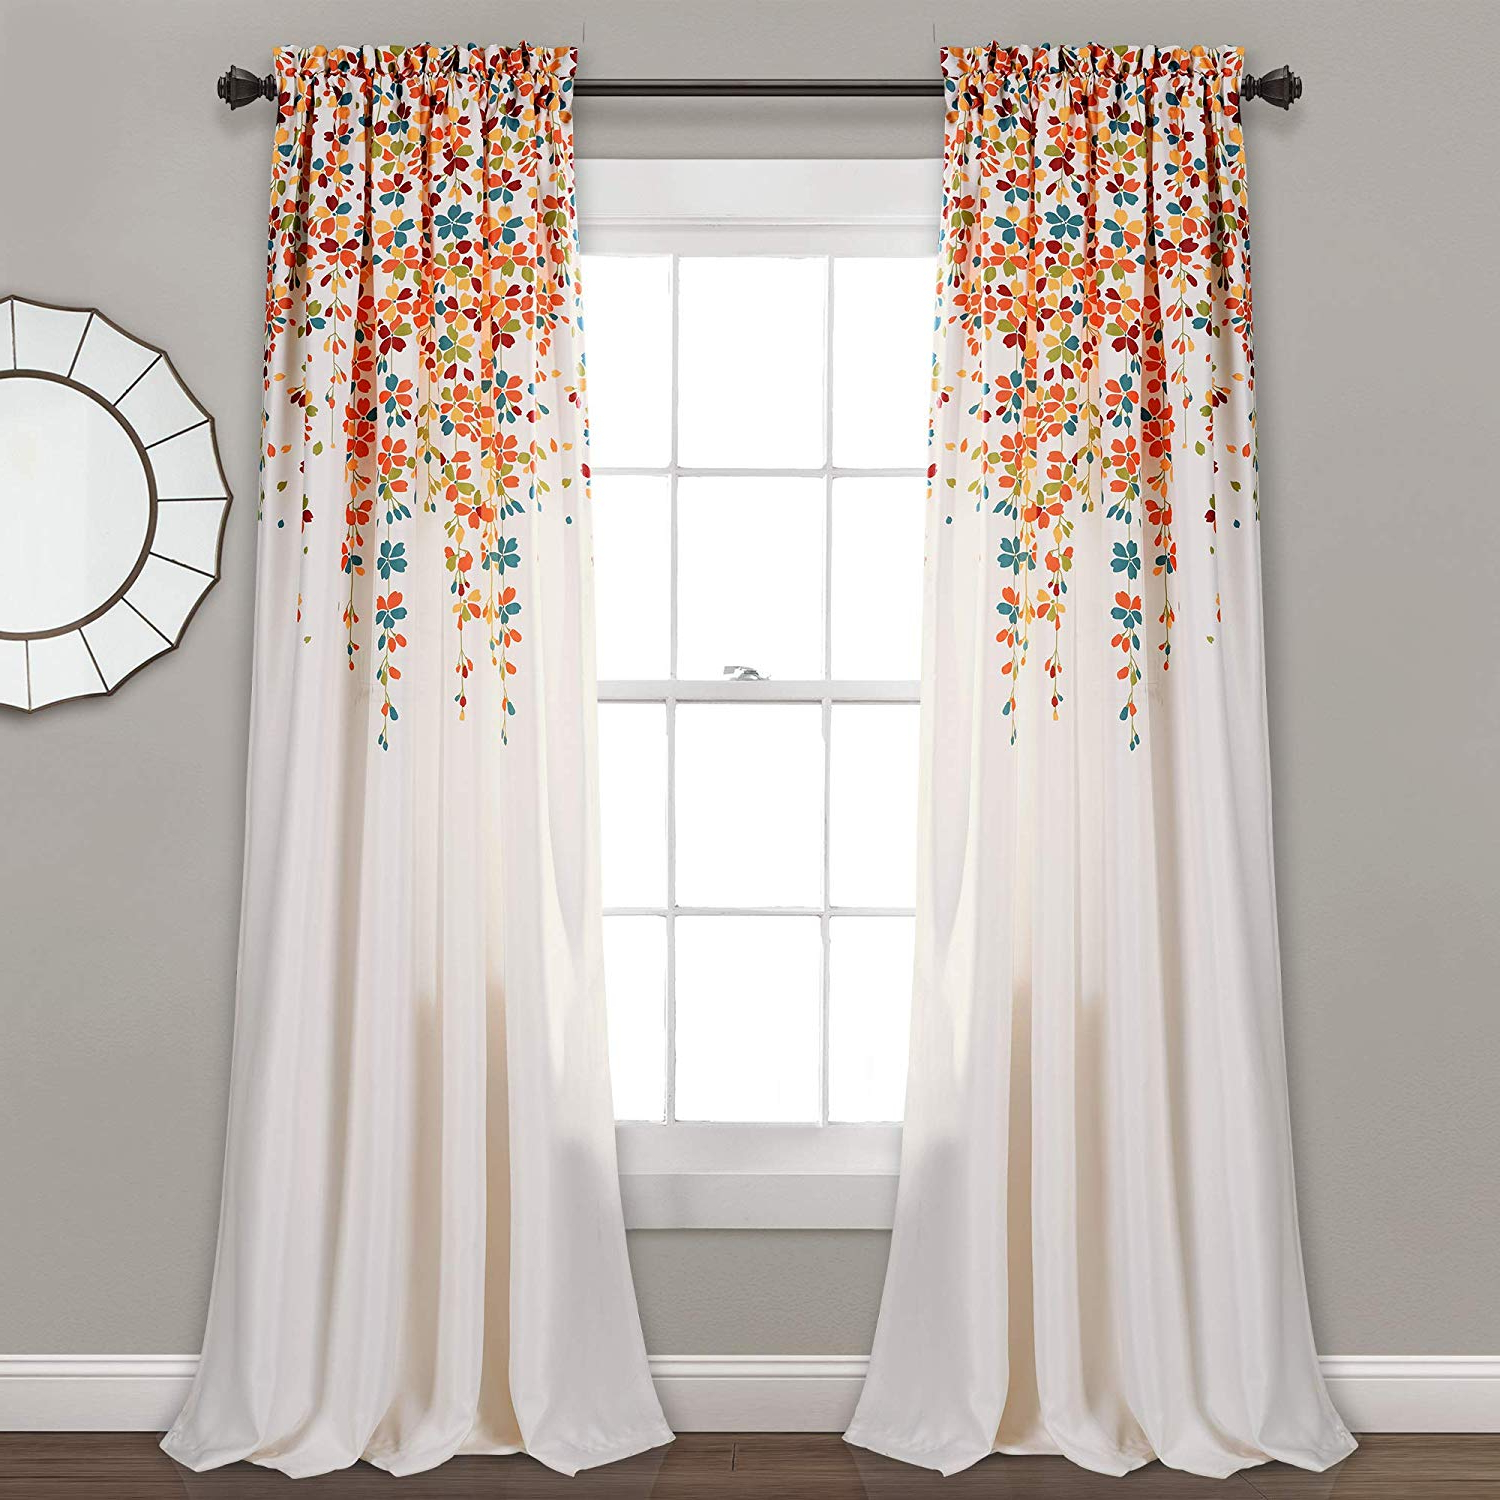 "Weeping Flowers Room Darkening Curtain Panel Pairs Inside Favorite Lush Decor Weeping Flowers Room Darkening Window Panel Curtain Set (pair), 84"" X 52"", Turquoise And Tangerine (View 3 of 20)"